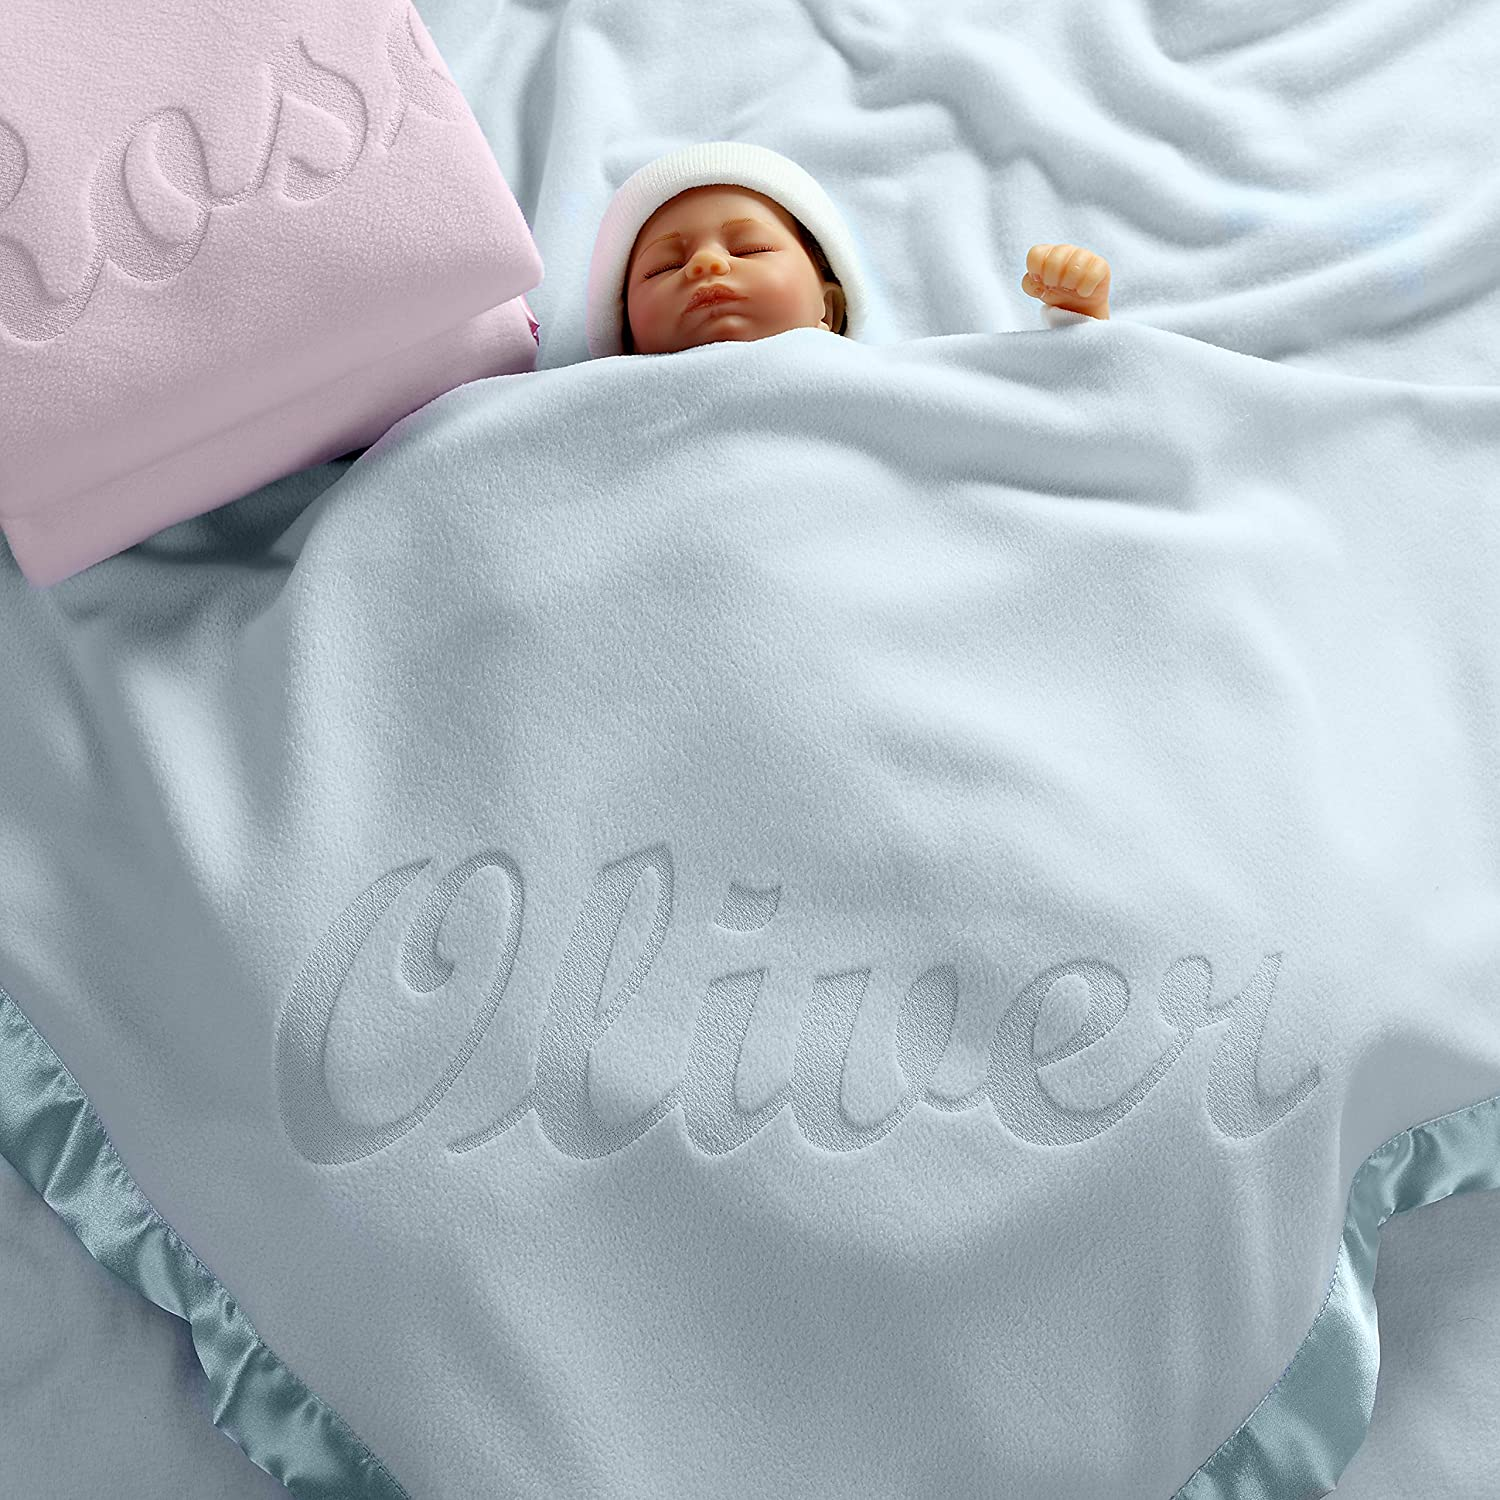 Amazon com personalized baby blankets blue large 36x36 inch wide satin trim 200 gsm fleece baby